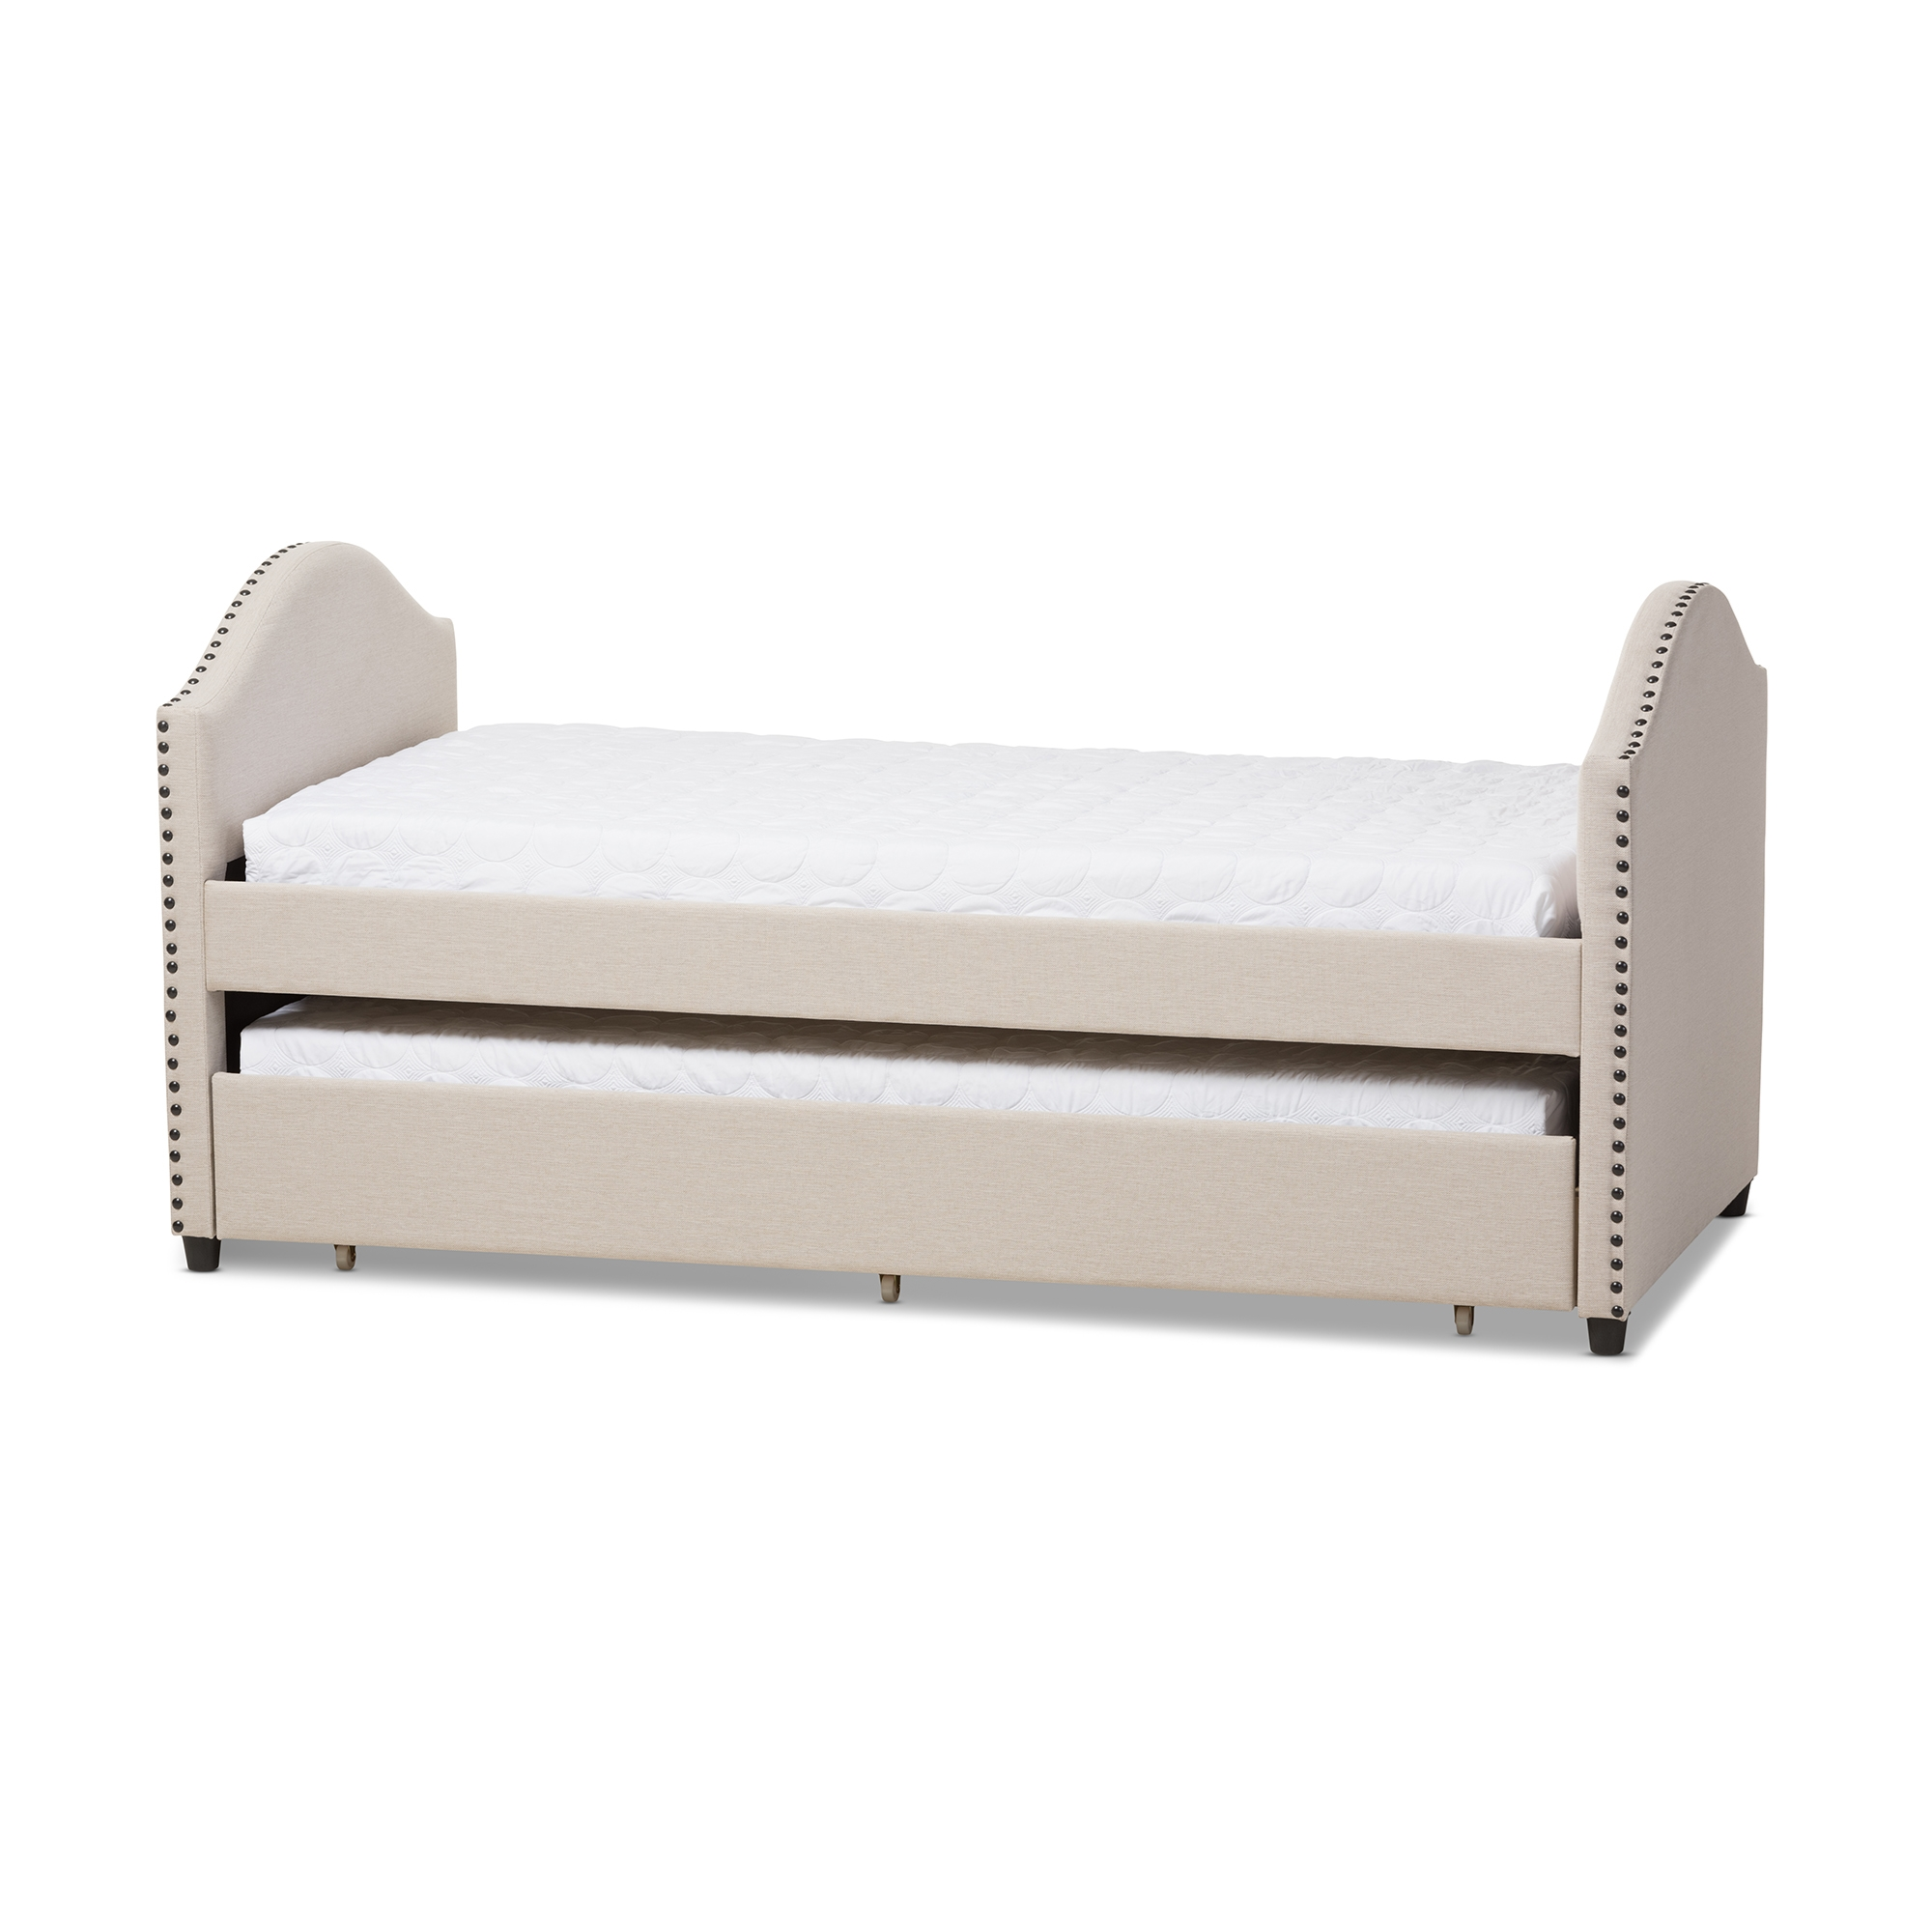 Superbe Baxton Studio Alessia Modern And Contemporary Beige Fabric Upholstered  Daybed With Guest Trundle Bed